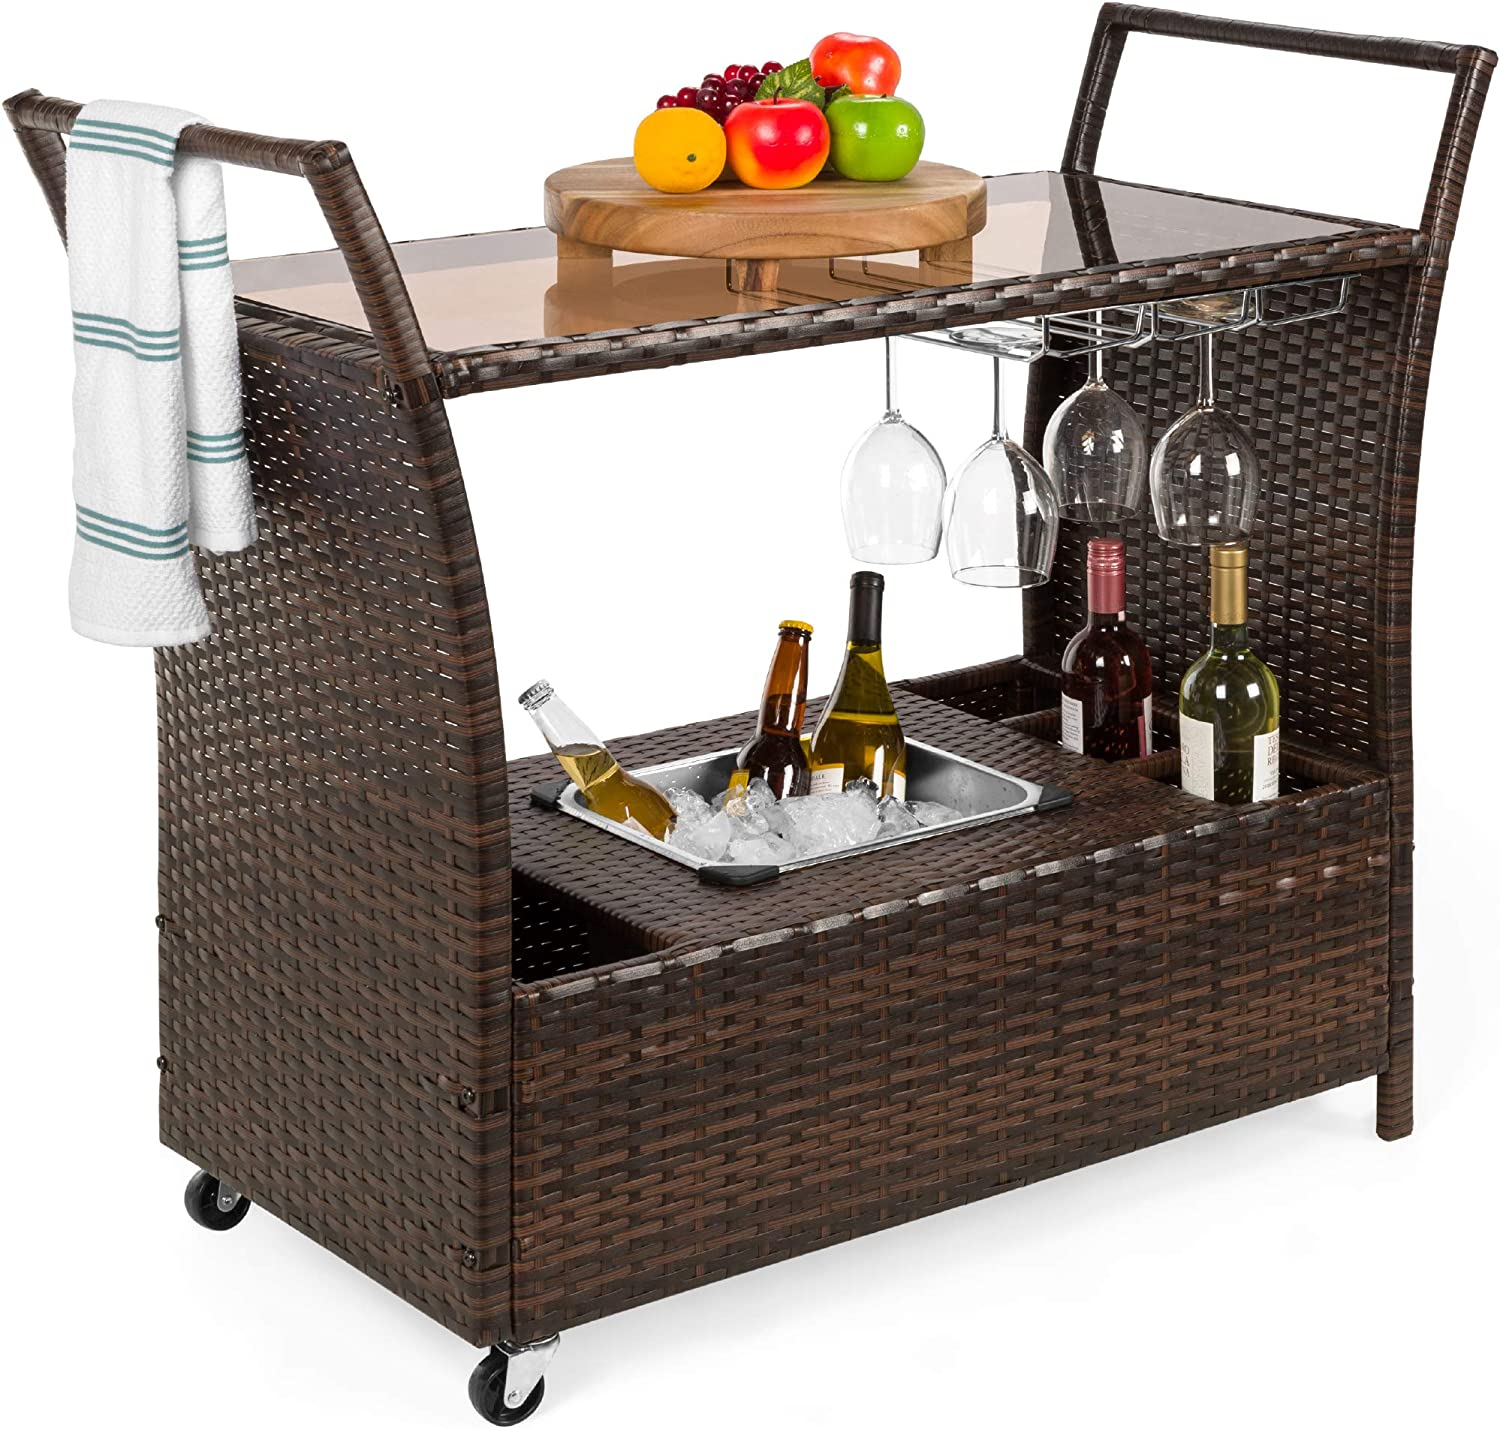 Amazon Com Best Choice Products Outdoor Rolling Wicker Bar Cart W Removable Ice Bucket Glass Countertop Wine Glass Holders Storage Compartments Brown Garden Outdoor